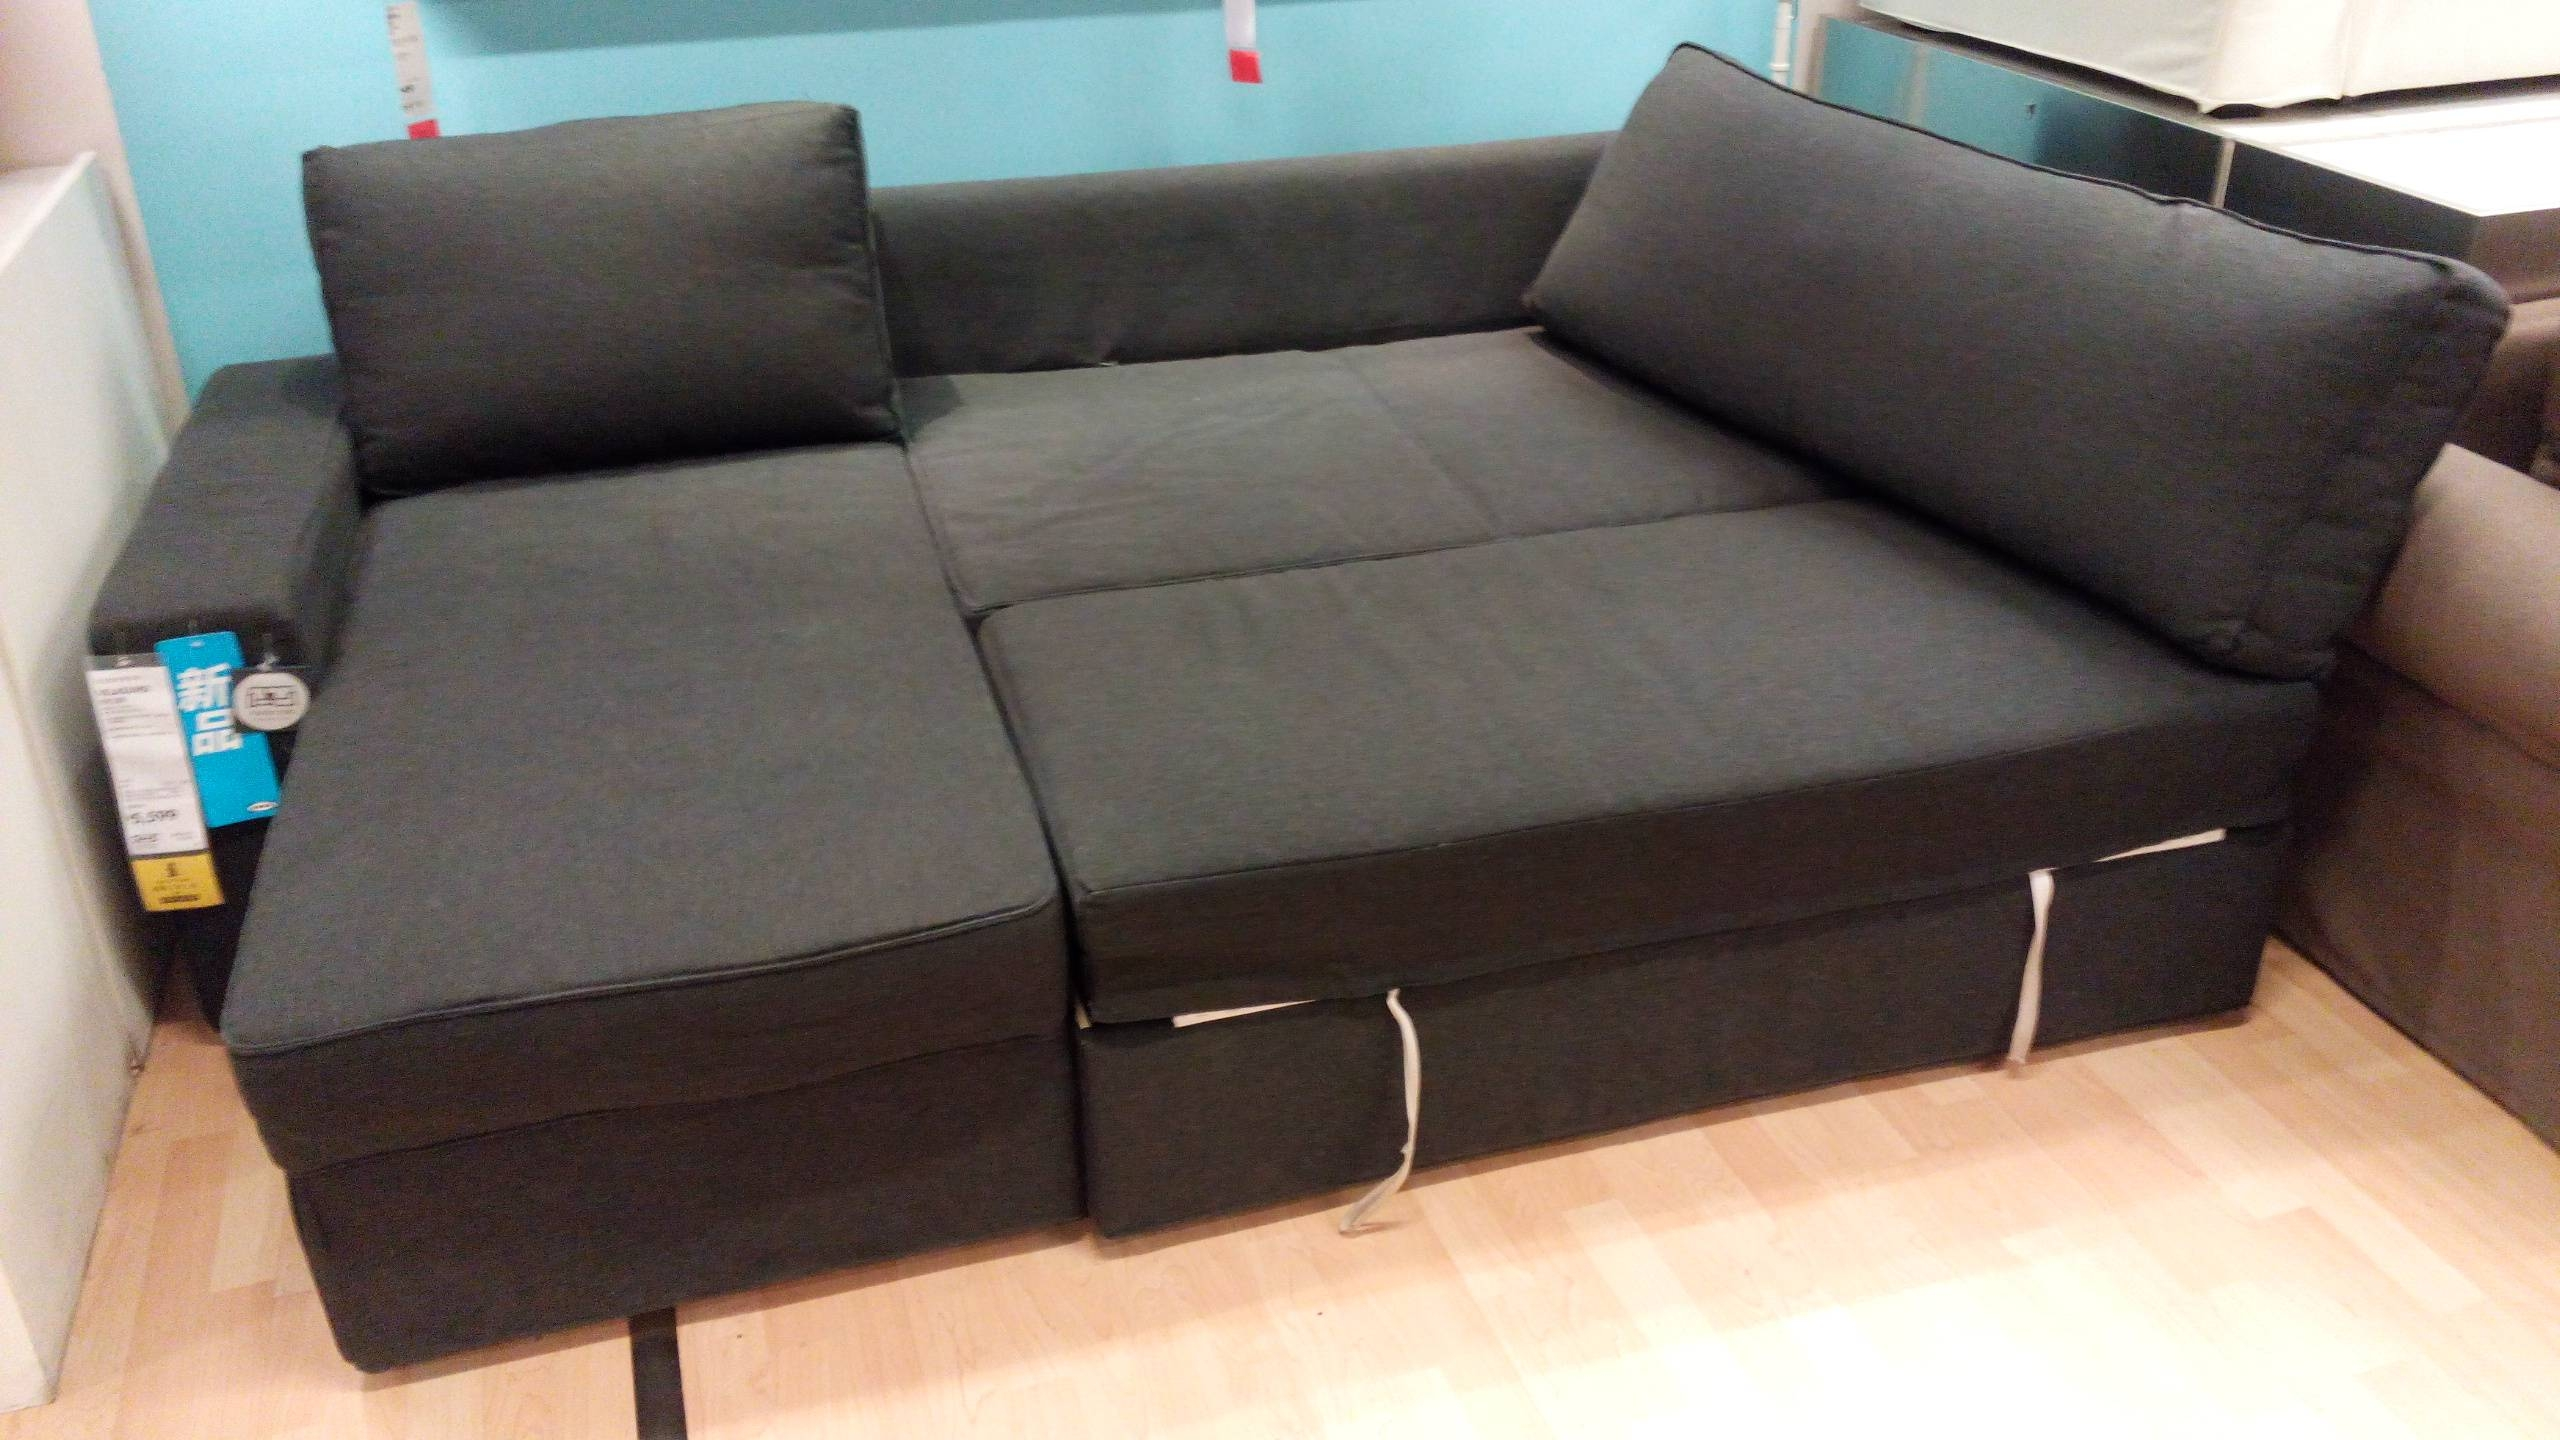 Furniture: Big Choice Of Styles And Colors Futon Beds Ikea For For Sleeper Sofa Sectional Ikea (View 9 of 25)